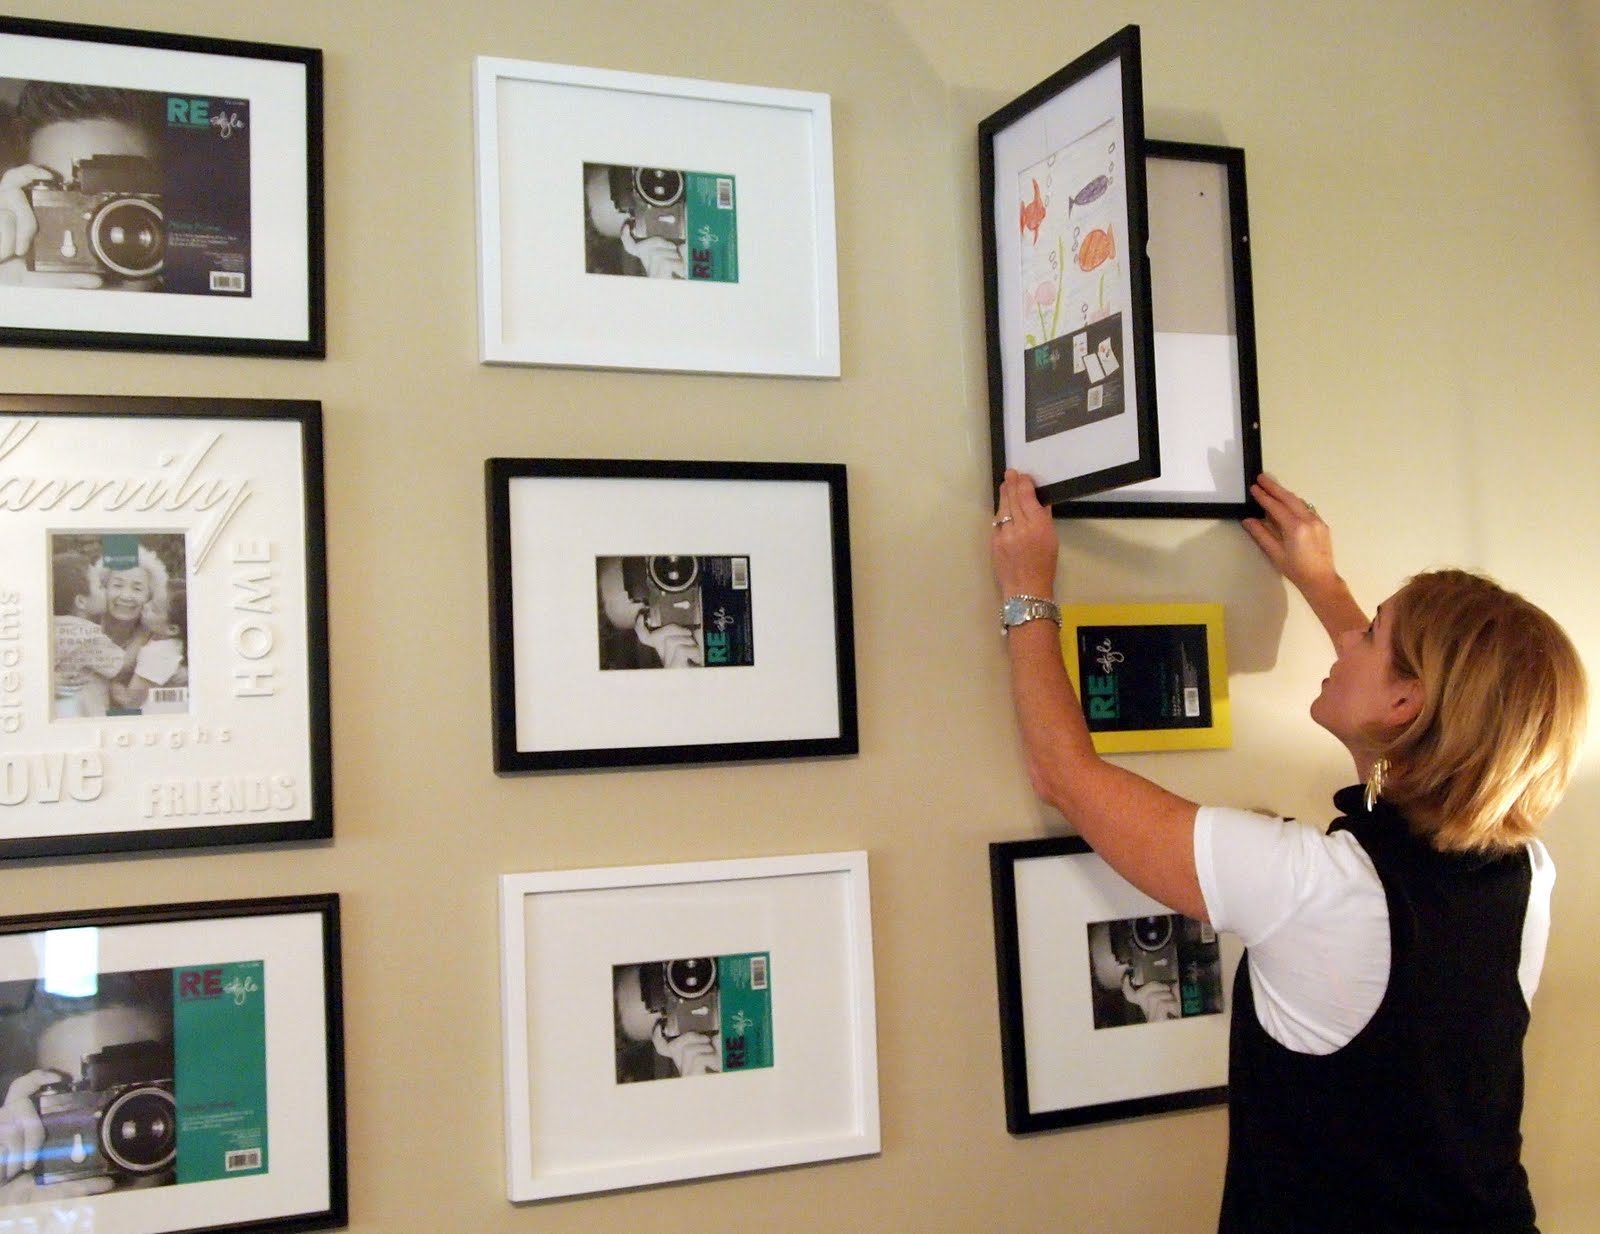 Loveyourroom 8 1 10 9 1 10 for Ways to frame pictures